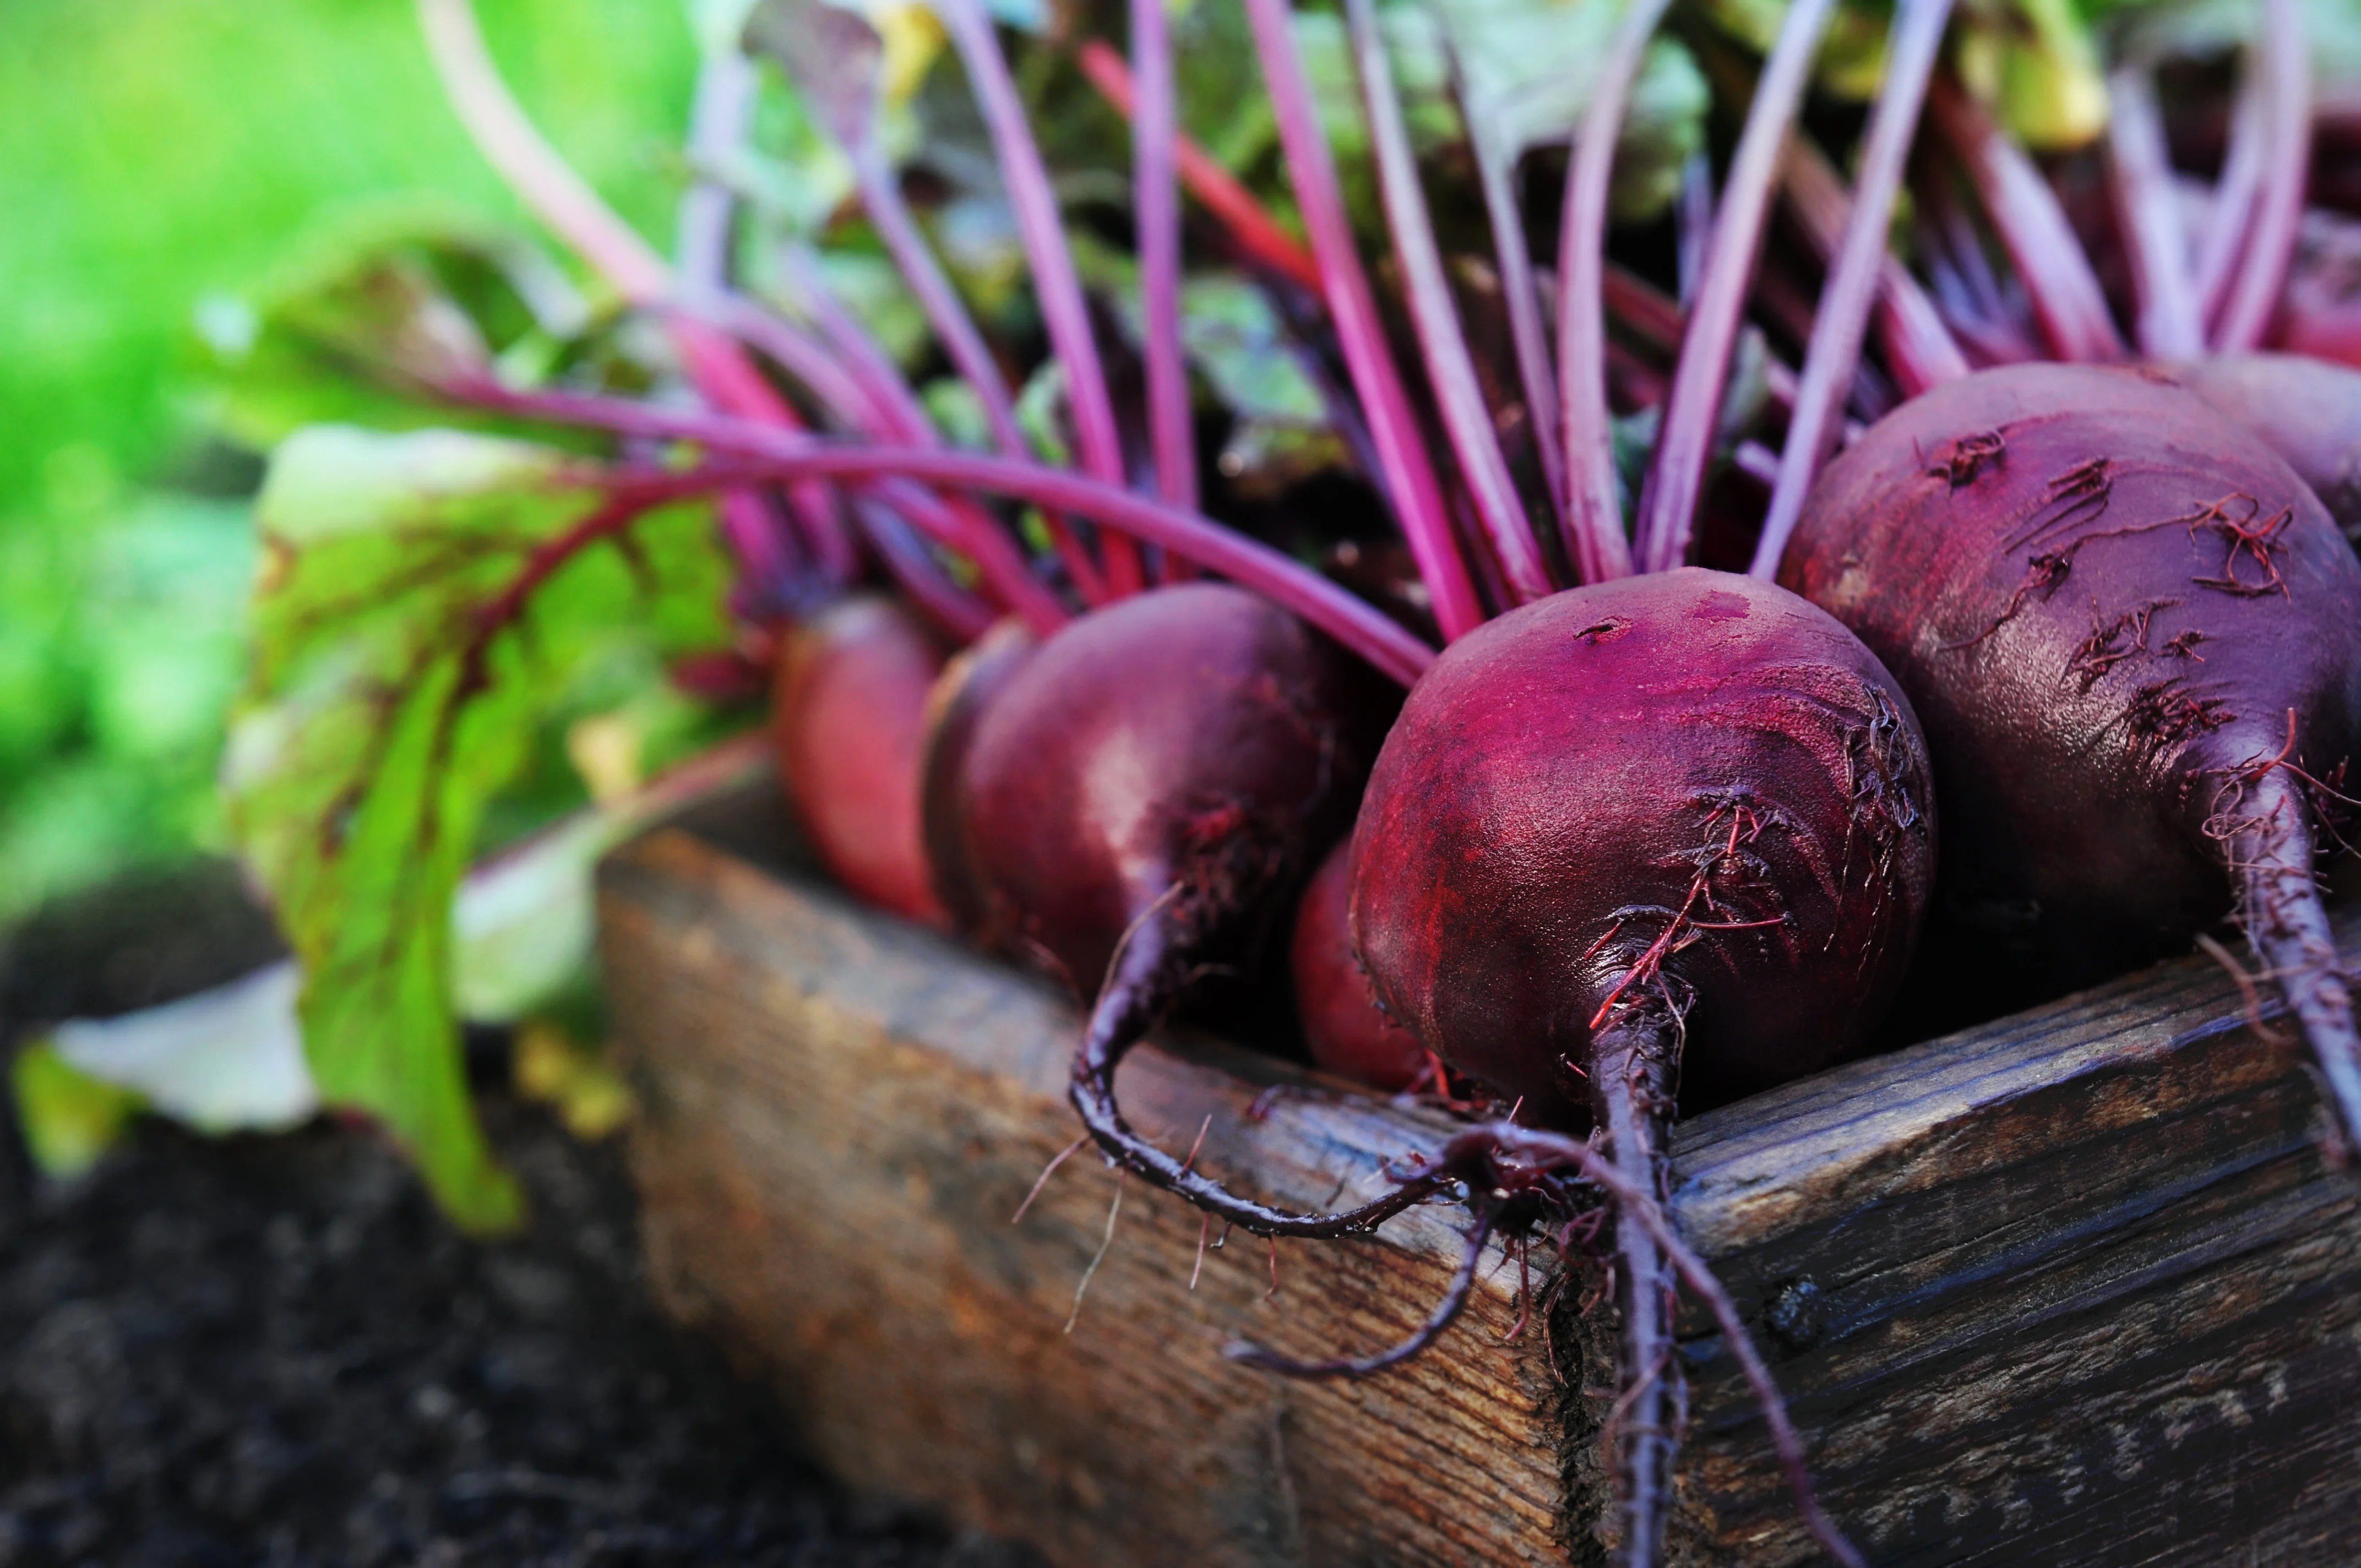 30 Second Guide to Growing Beets